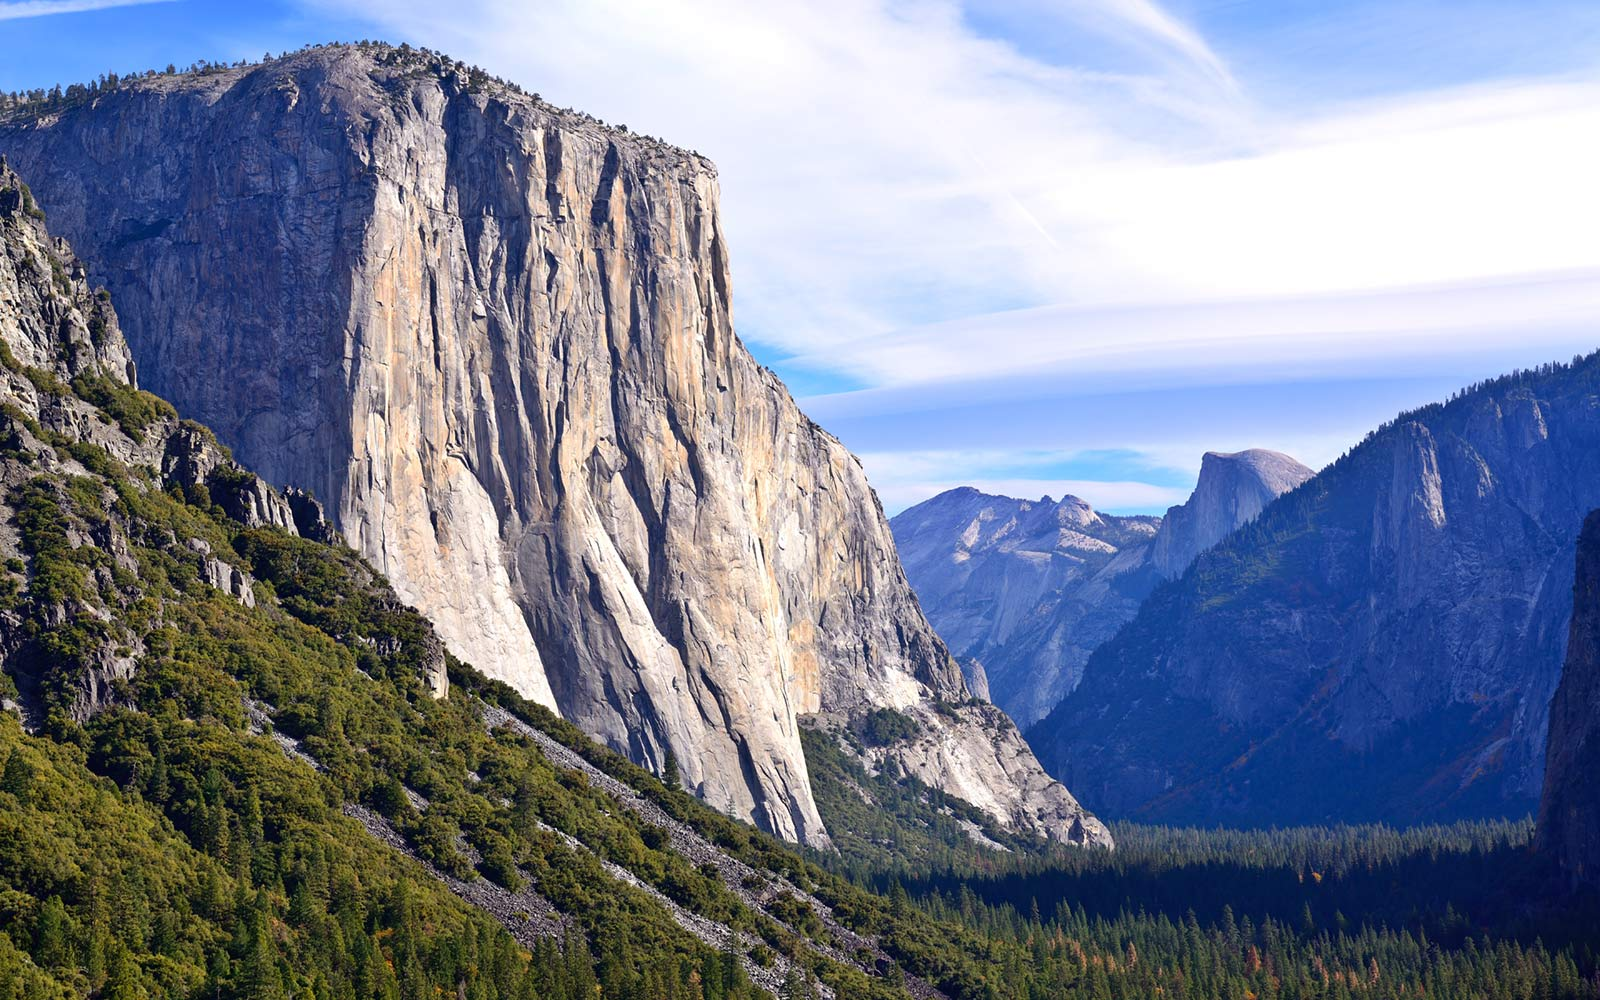 This rock climber just conquered El Capitan without safety gear